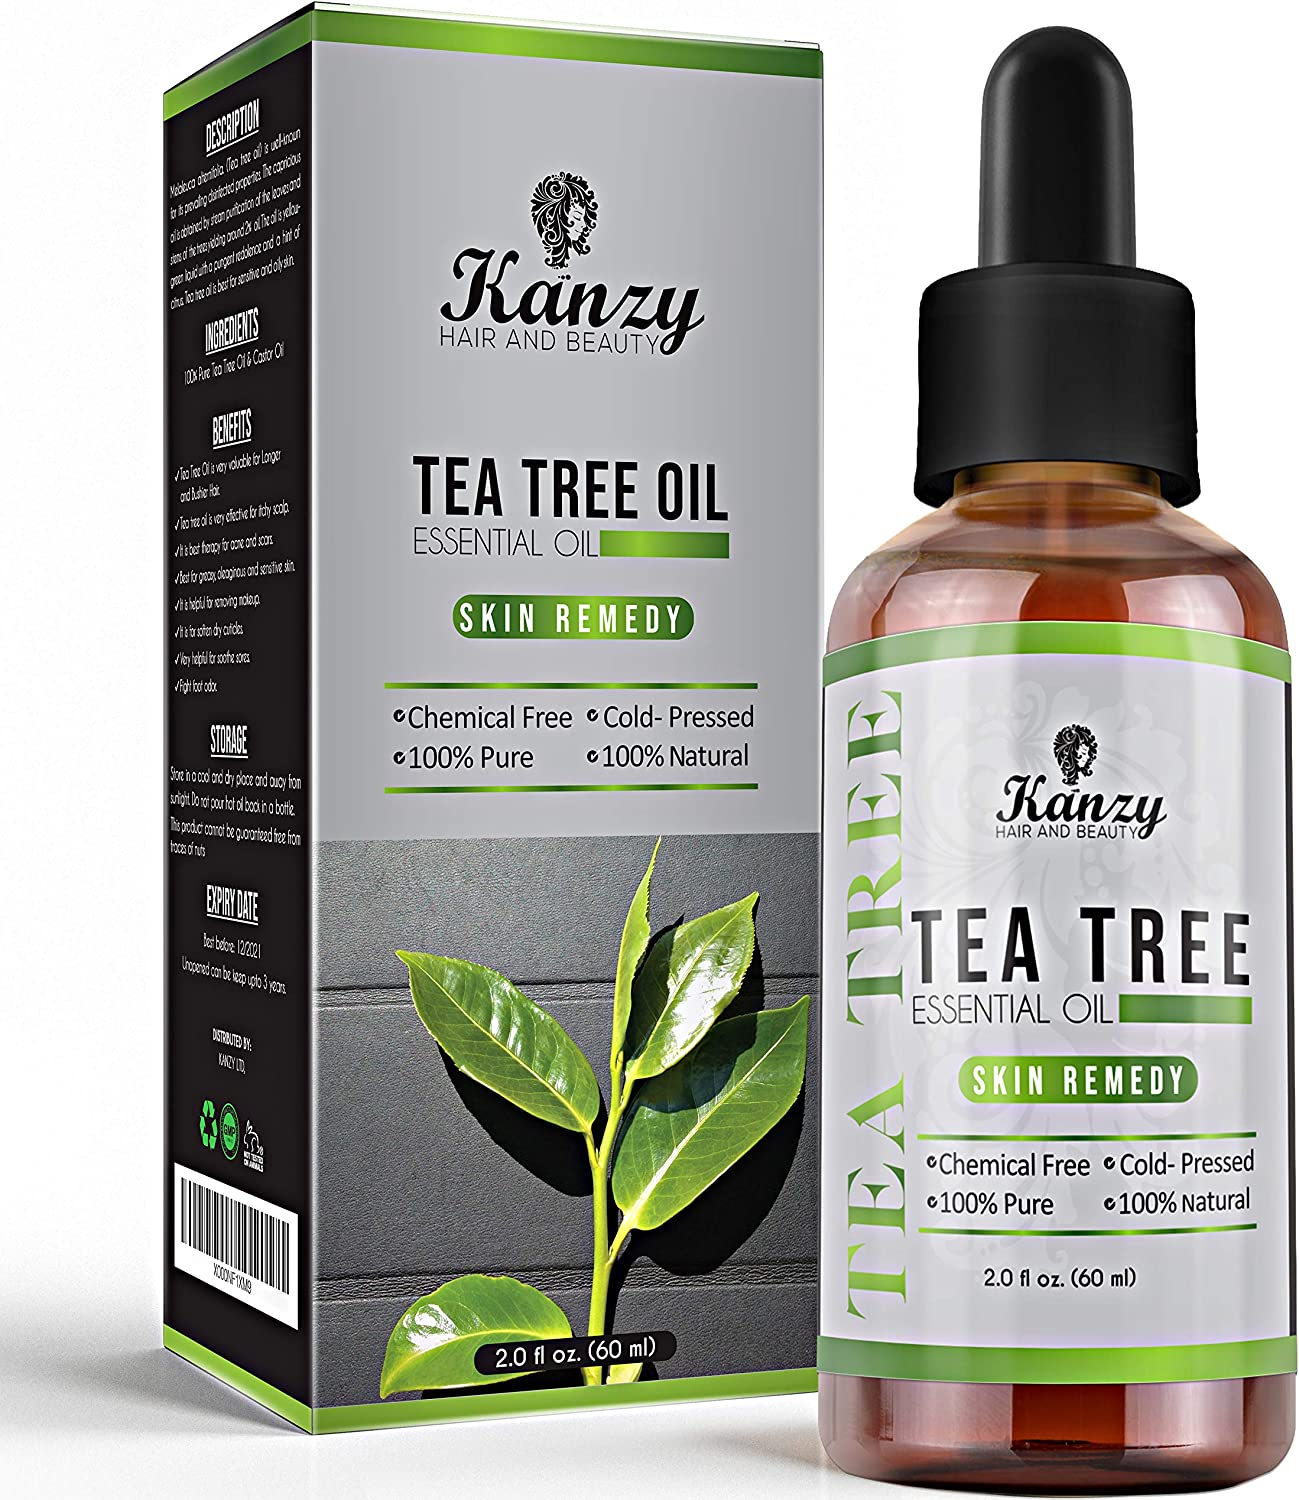 Kanzy Aceite Arbol del Te 60ml Natural Tea Tree Oil Bio